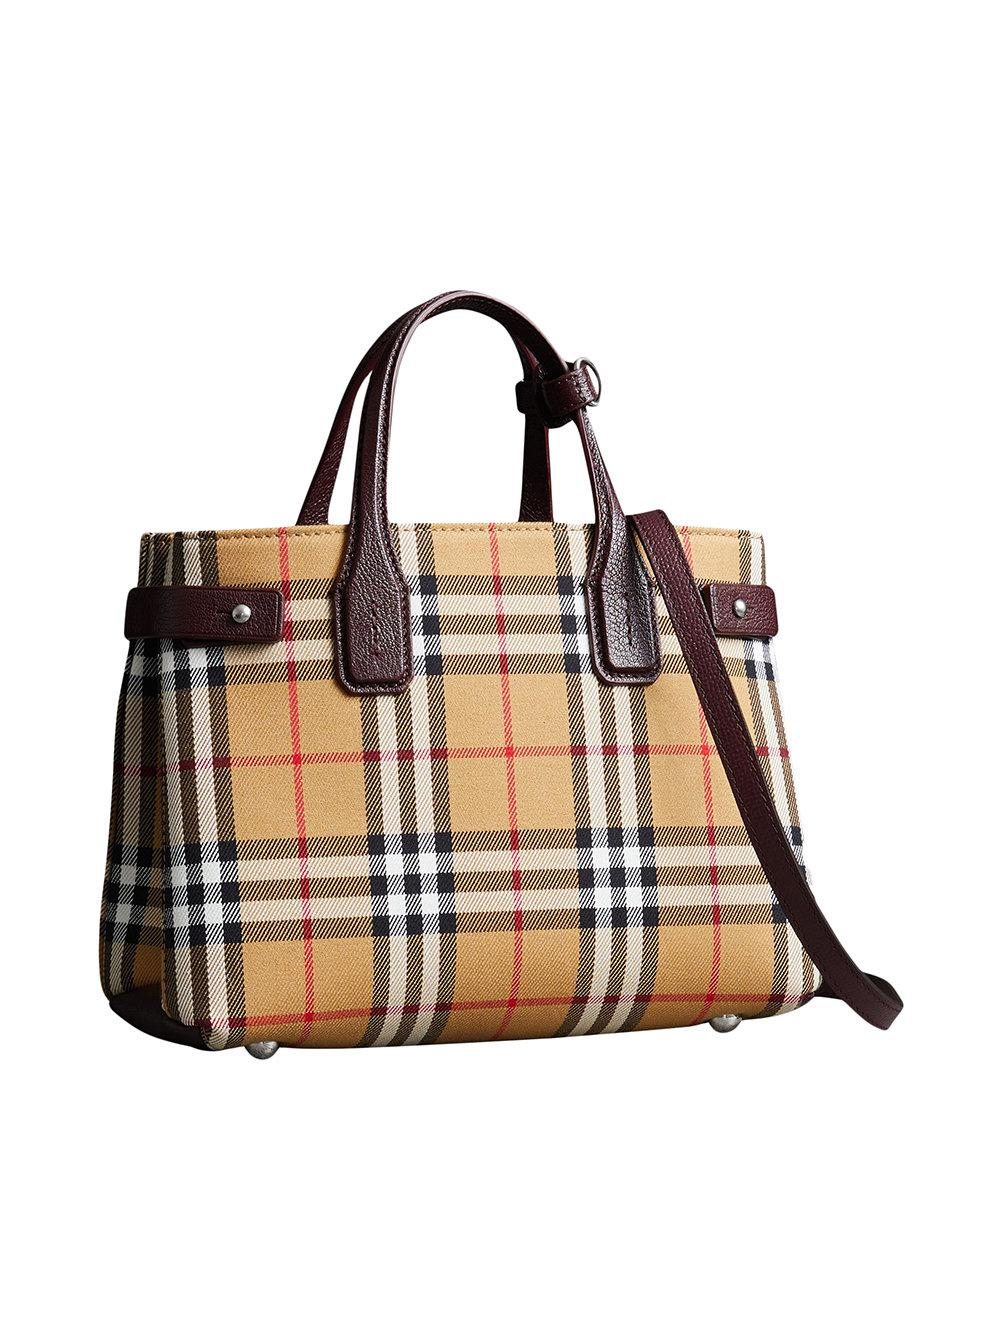 5a1deee245e662 burberry-Yellow-Orange-The-Small-Banner-In-Vintage-Check-And-Leather.jpeg